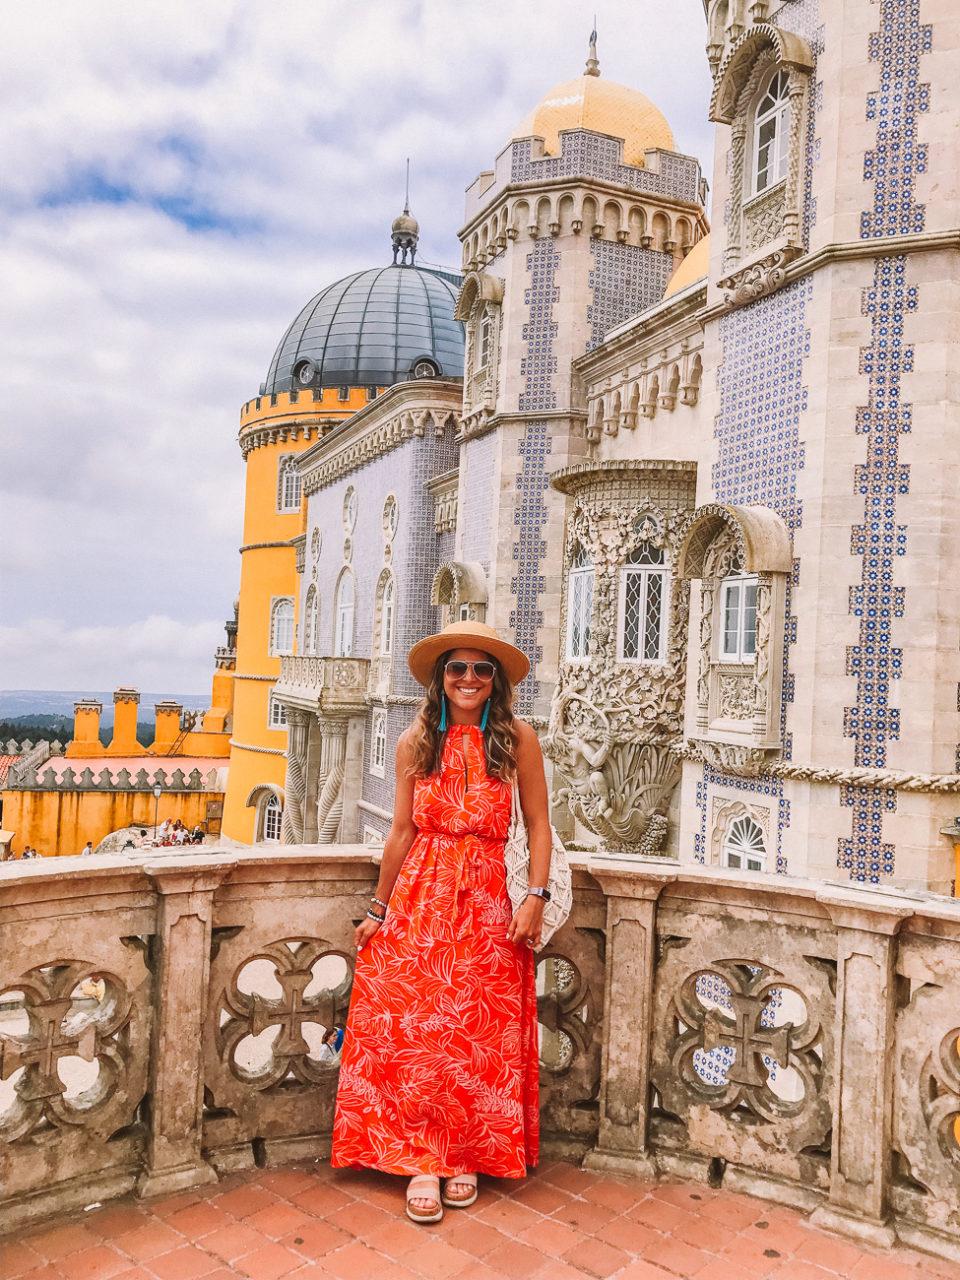 A Day in Sintra, Portugal